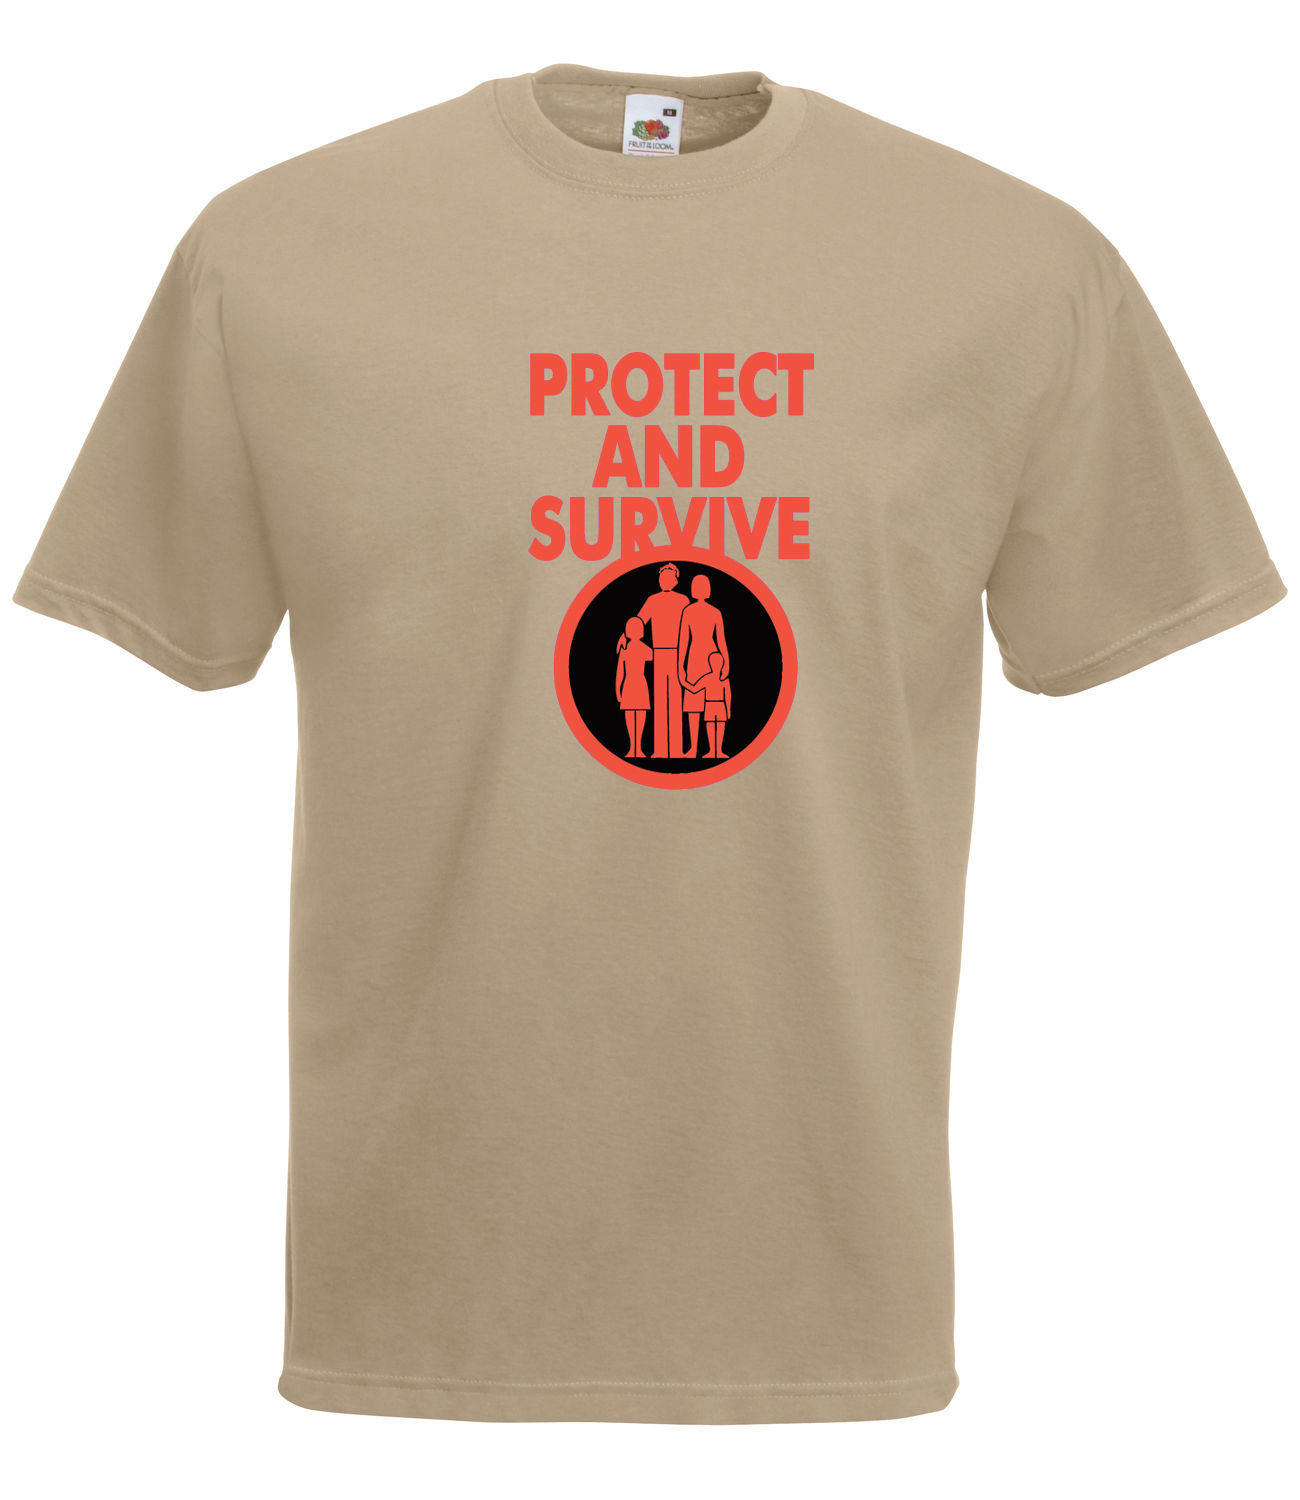 Classic Retro Protect And Survive Graphic High Quality 100